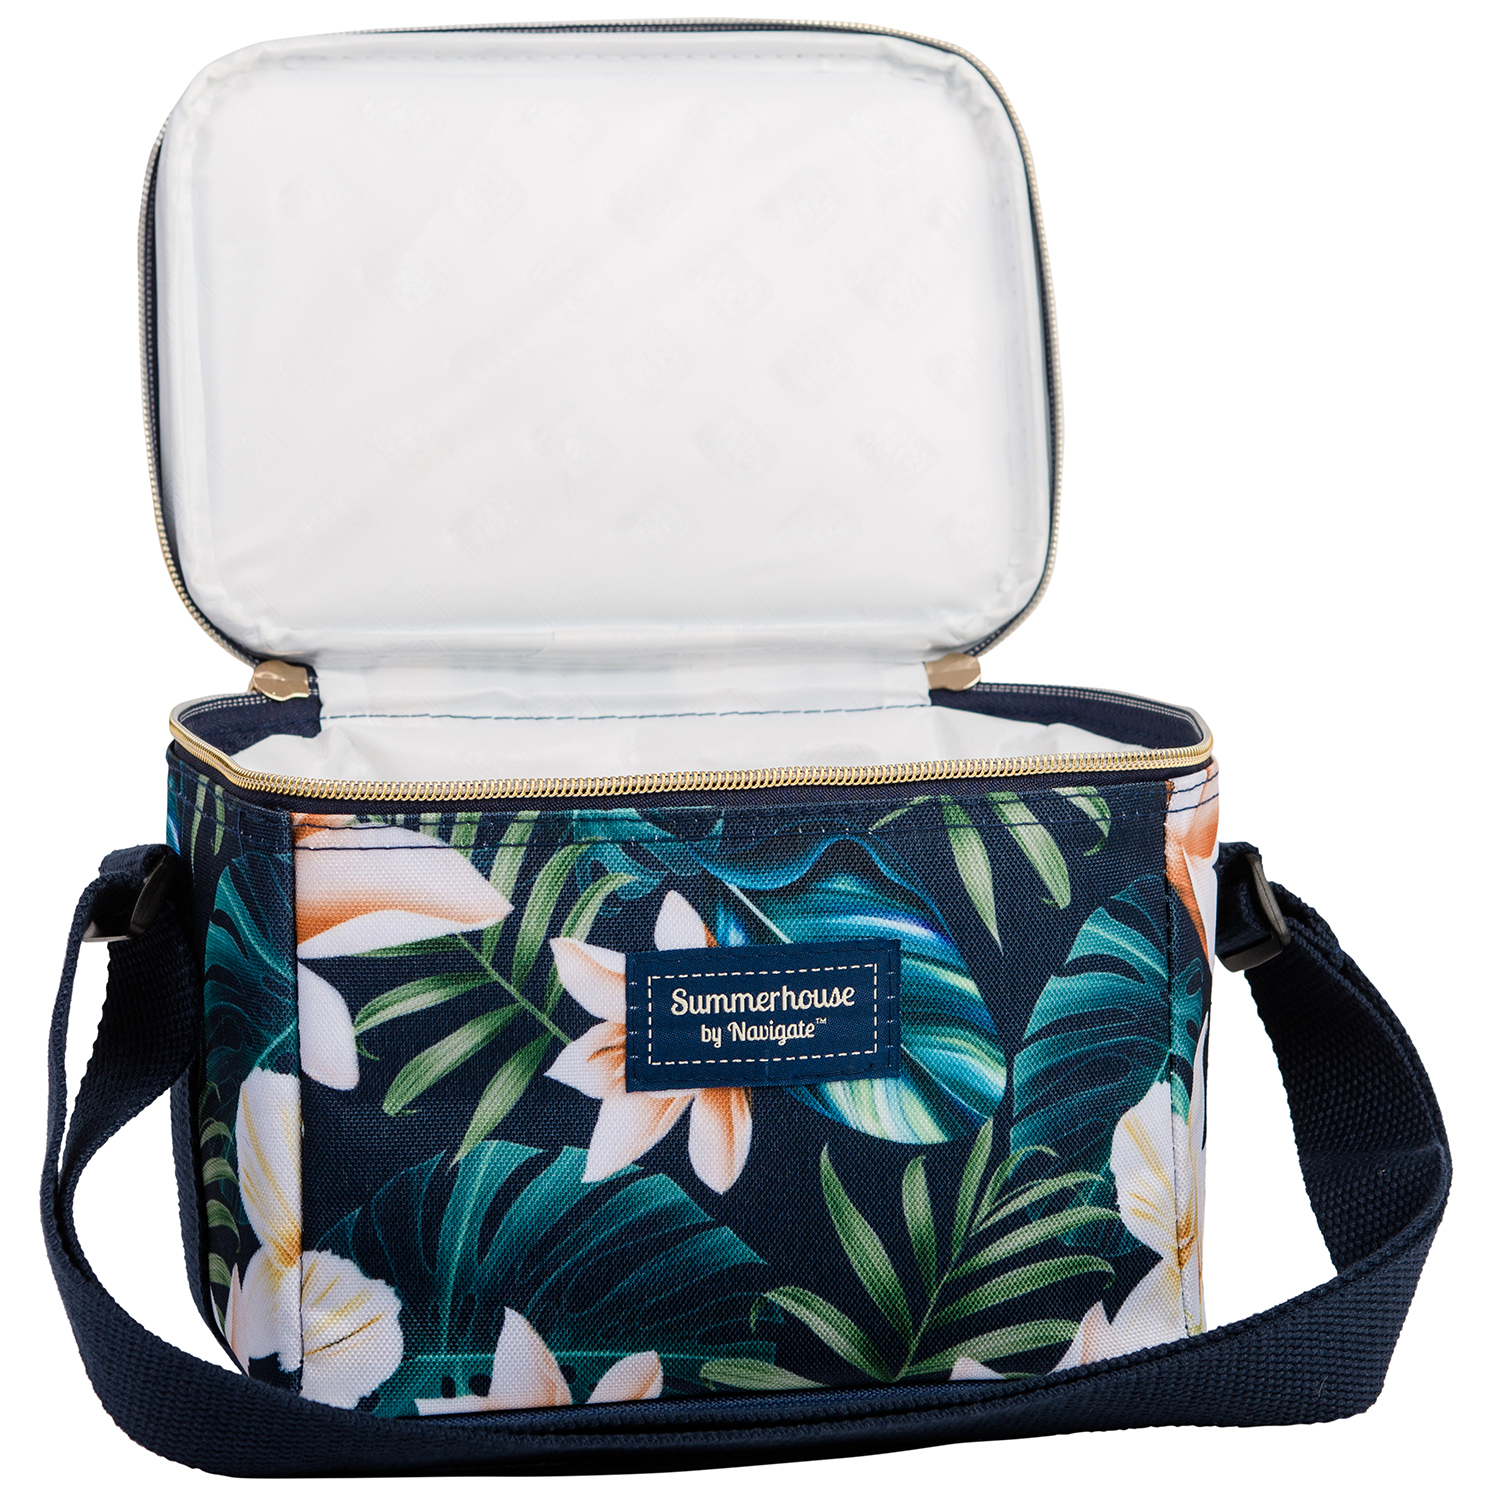 Navigate – Summerhouse 'Java' Personal Cool Bag with Matching 'Java' Travel Mug